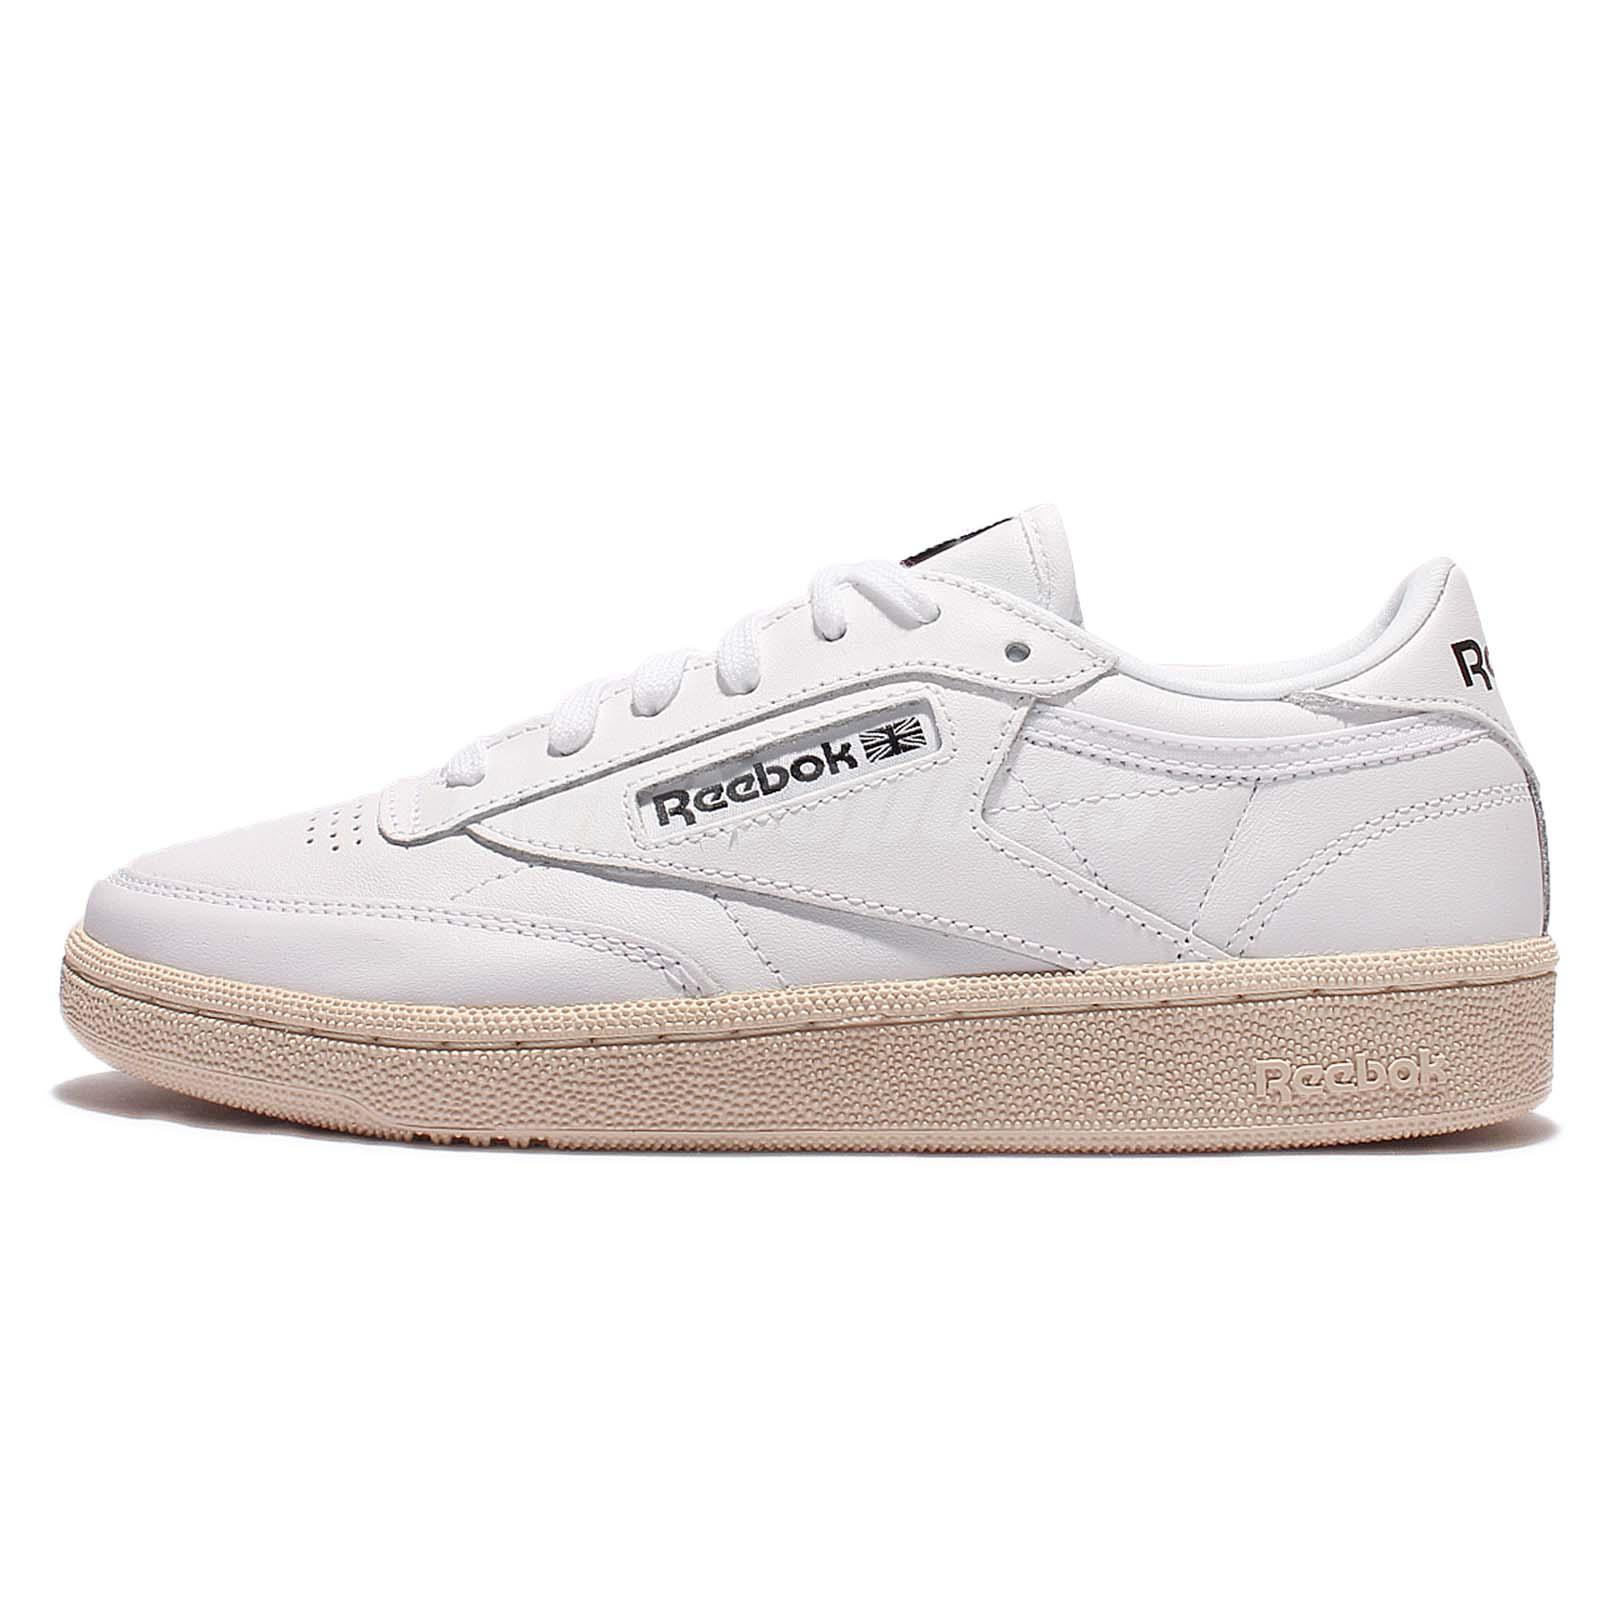 Reebok Classic Club C 85 SU White Black Vintage Soft Leather Women Shoes BS7490